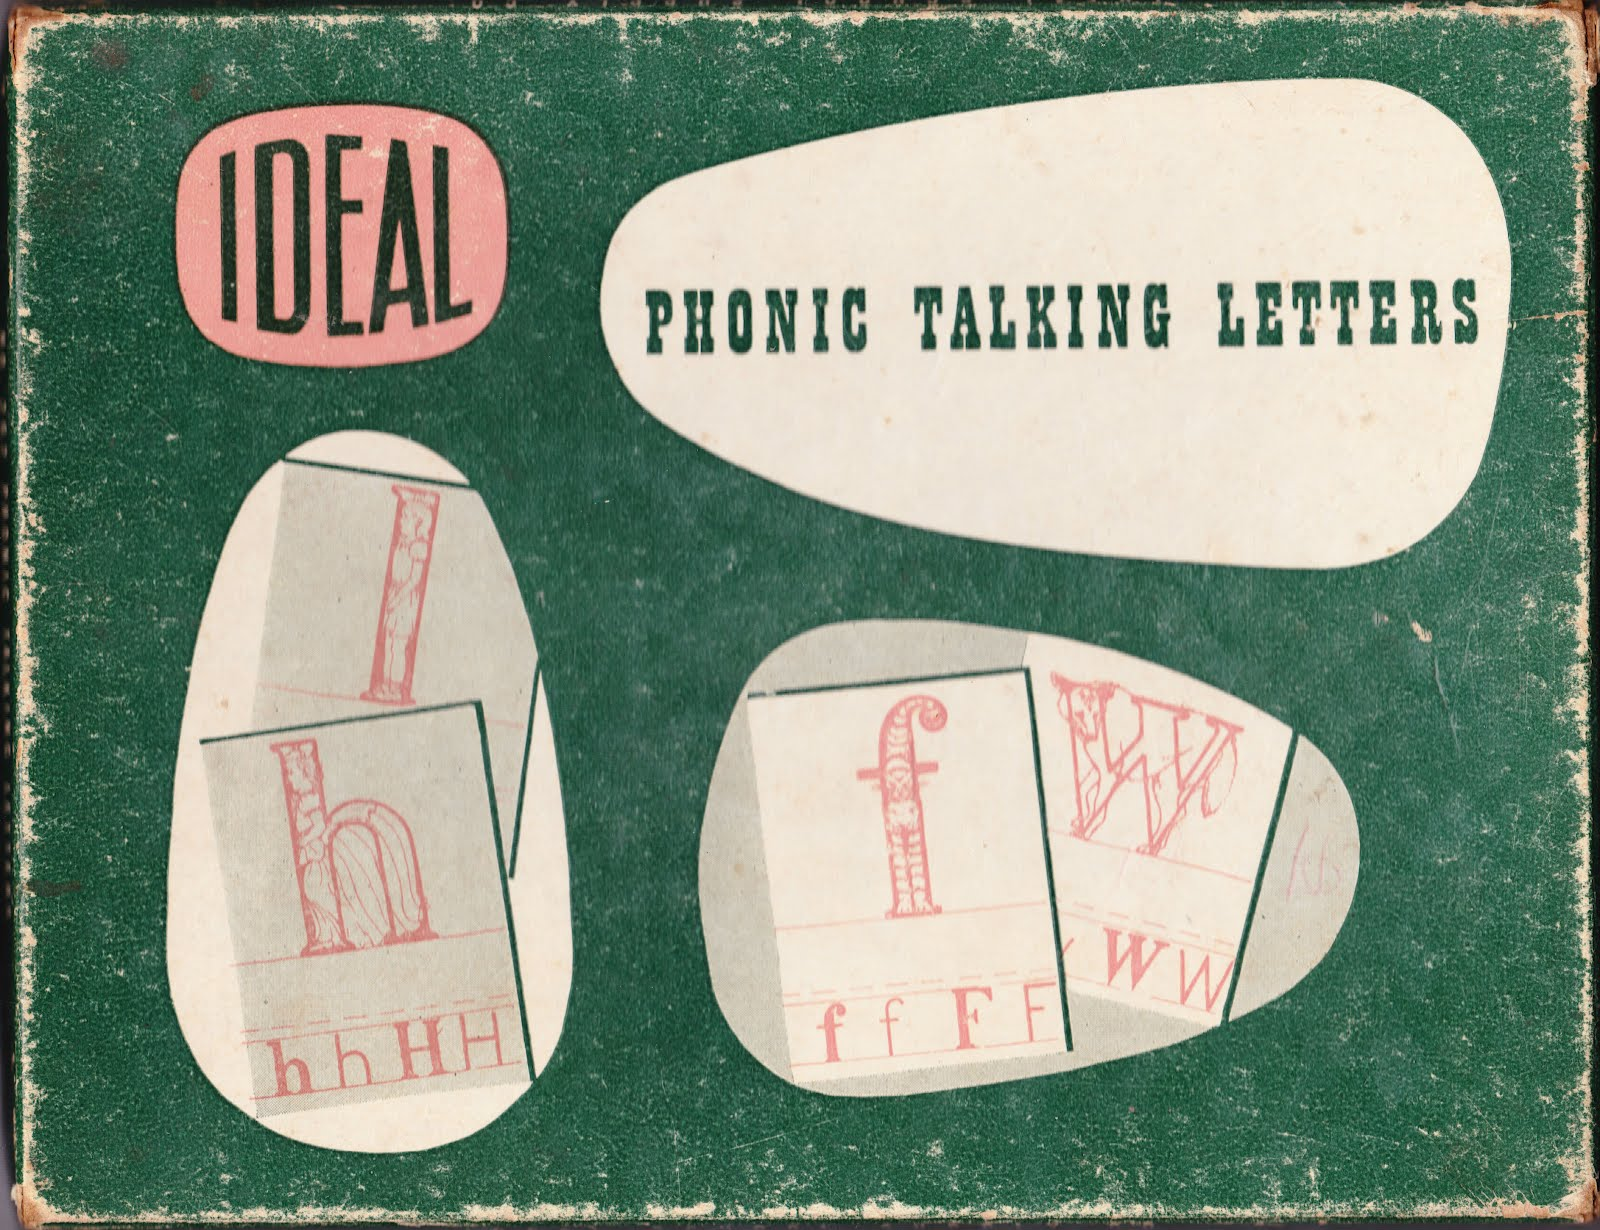 papergreat phonic talking letters from 1941 With talking letters